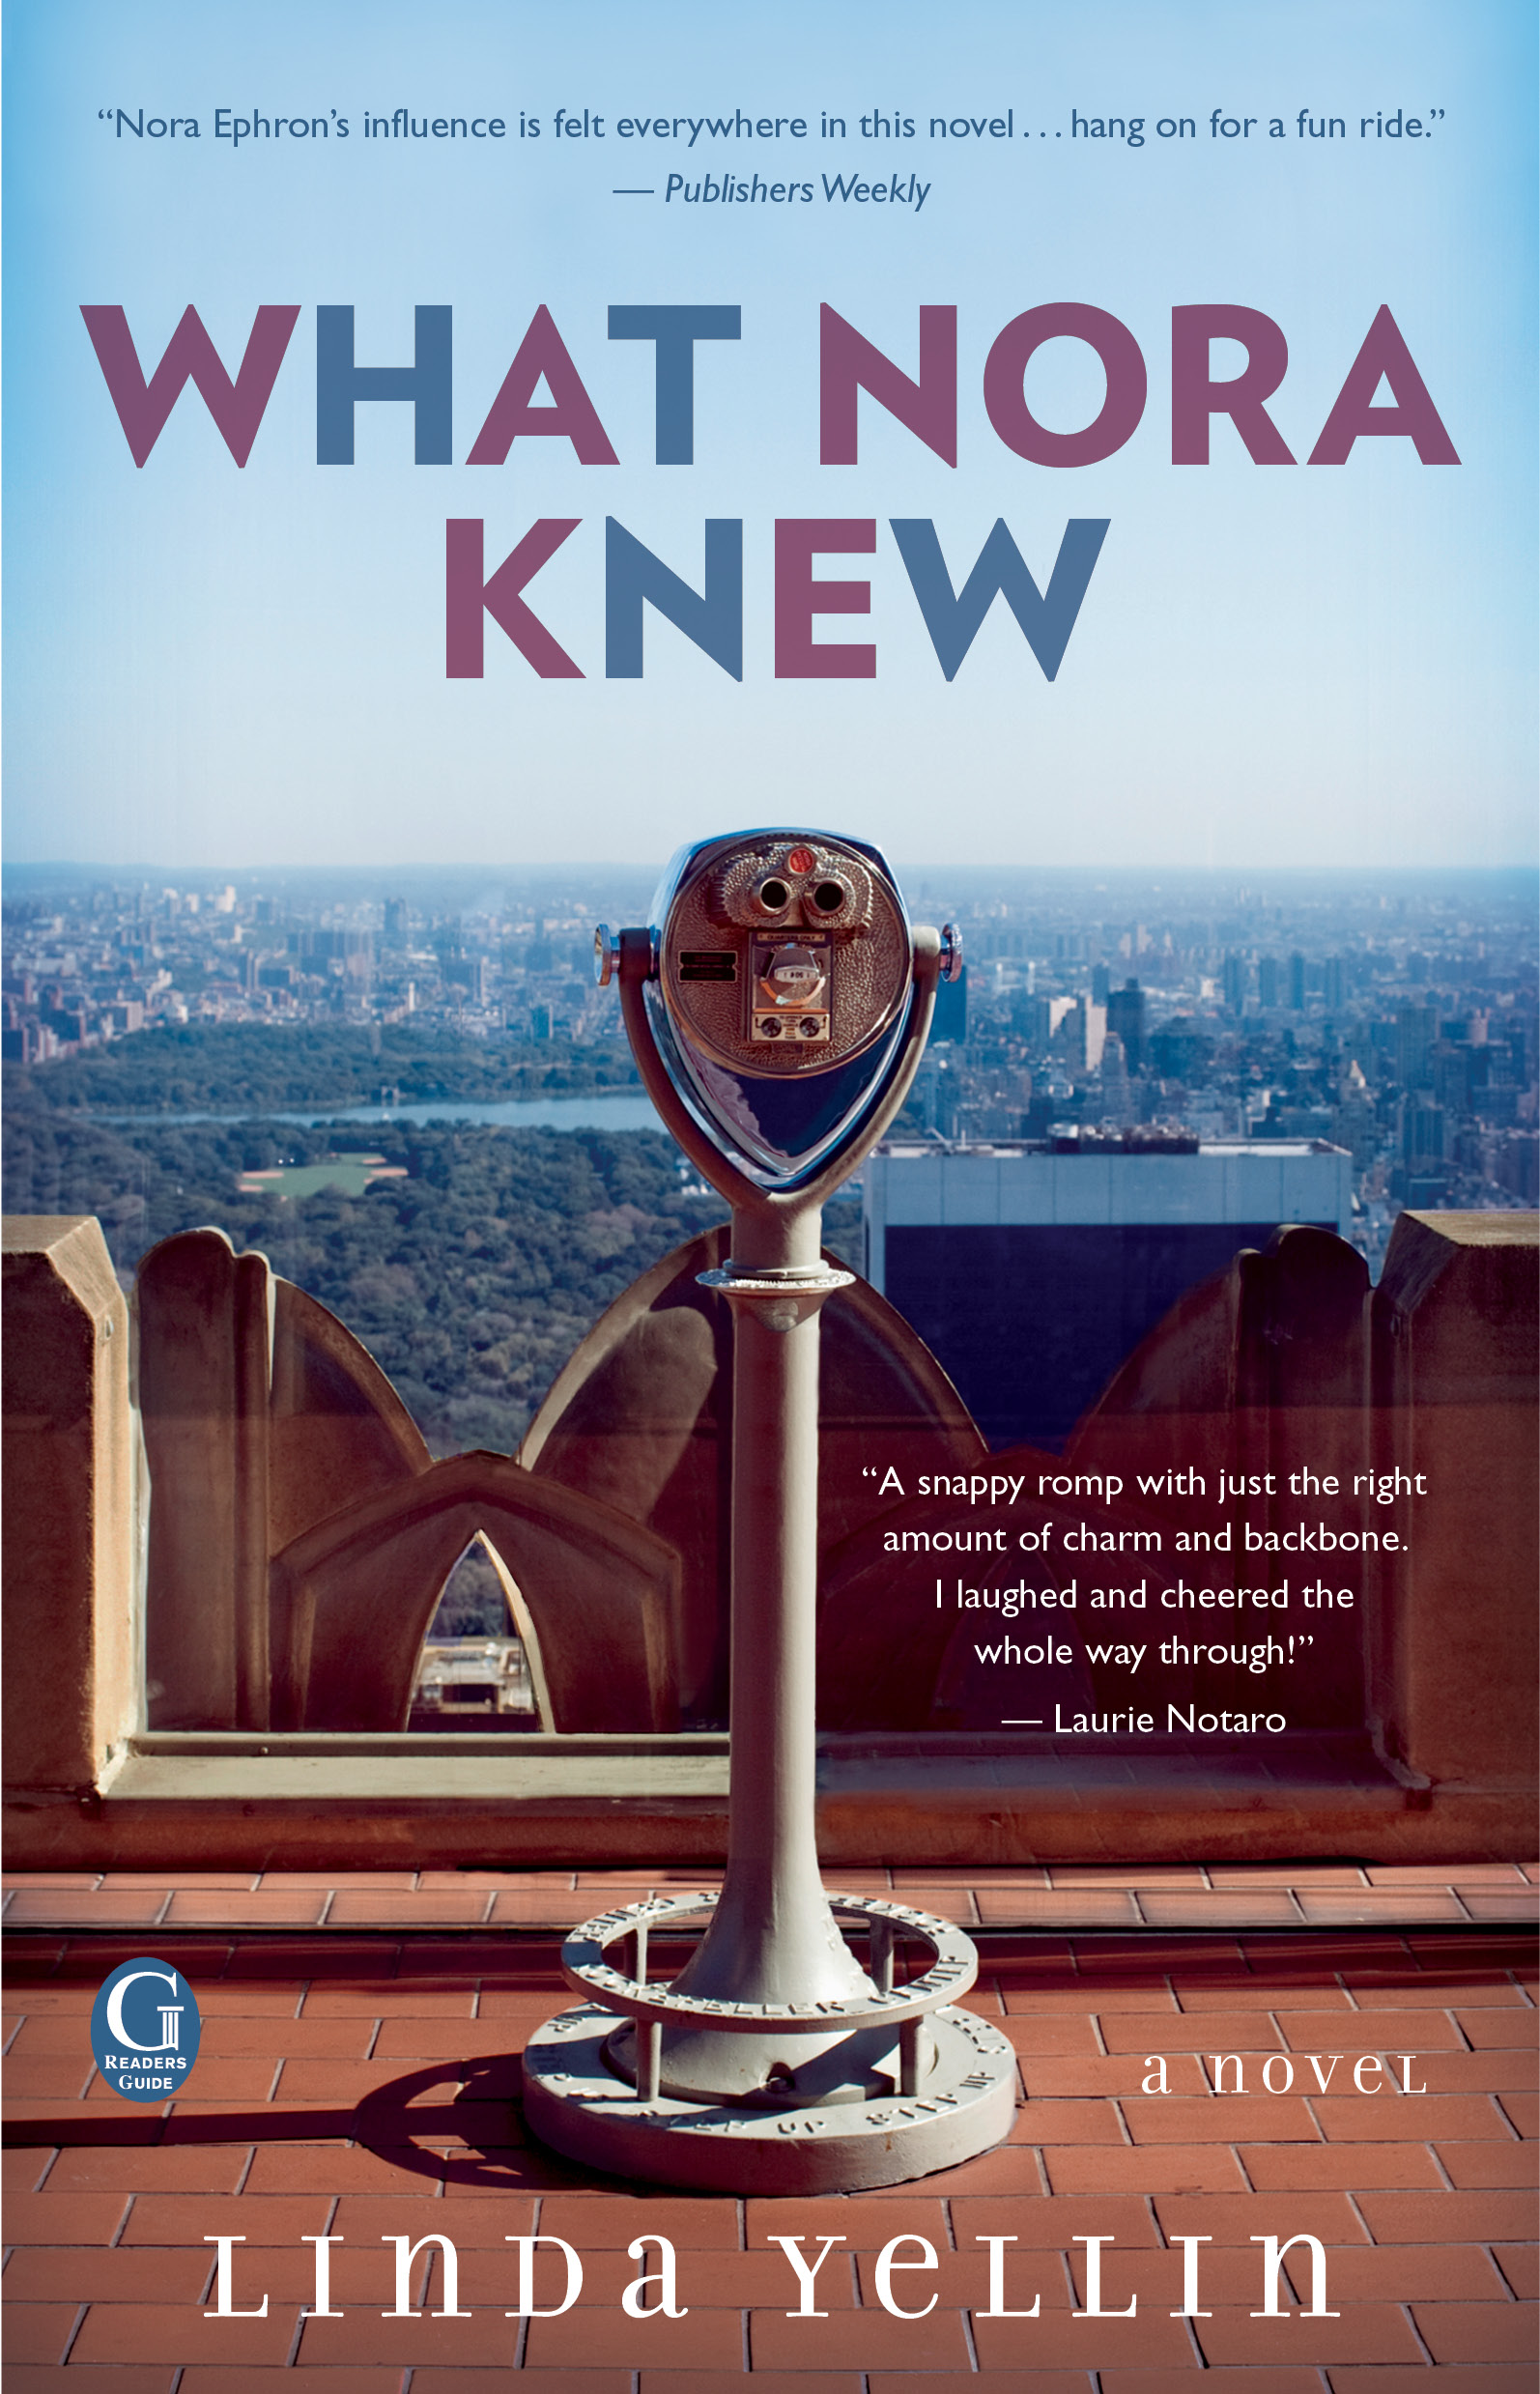 What-nora-knew-9781476730066_hr